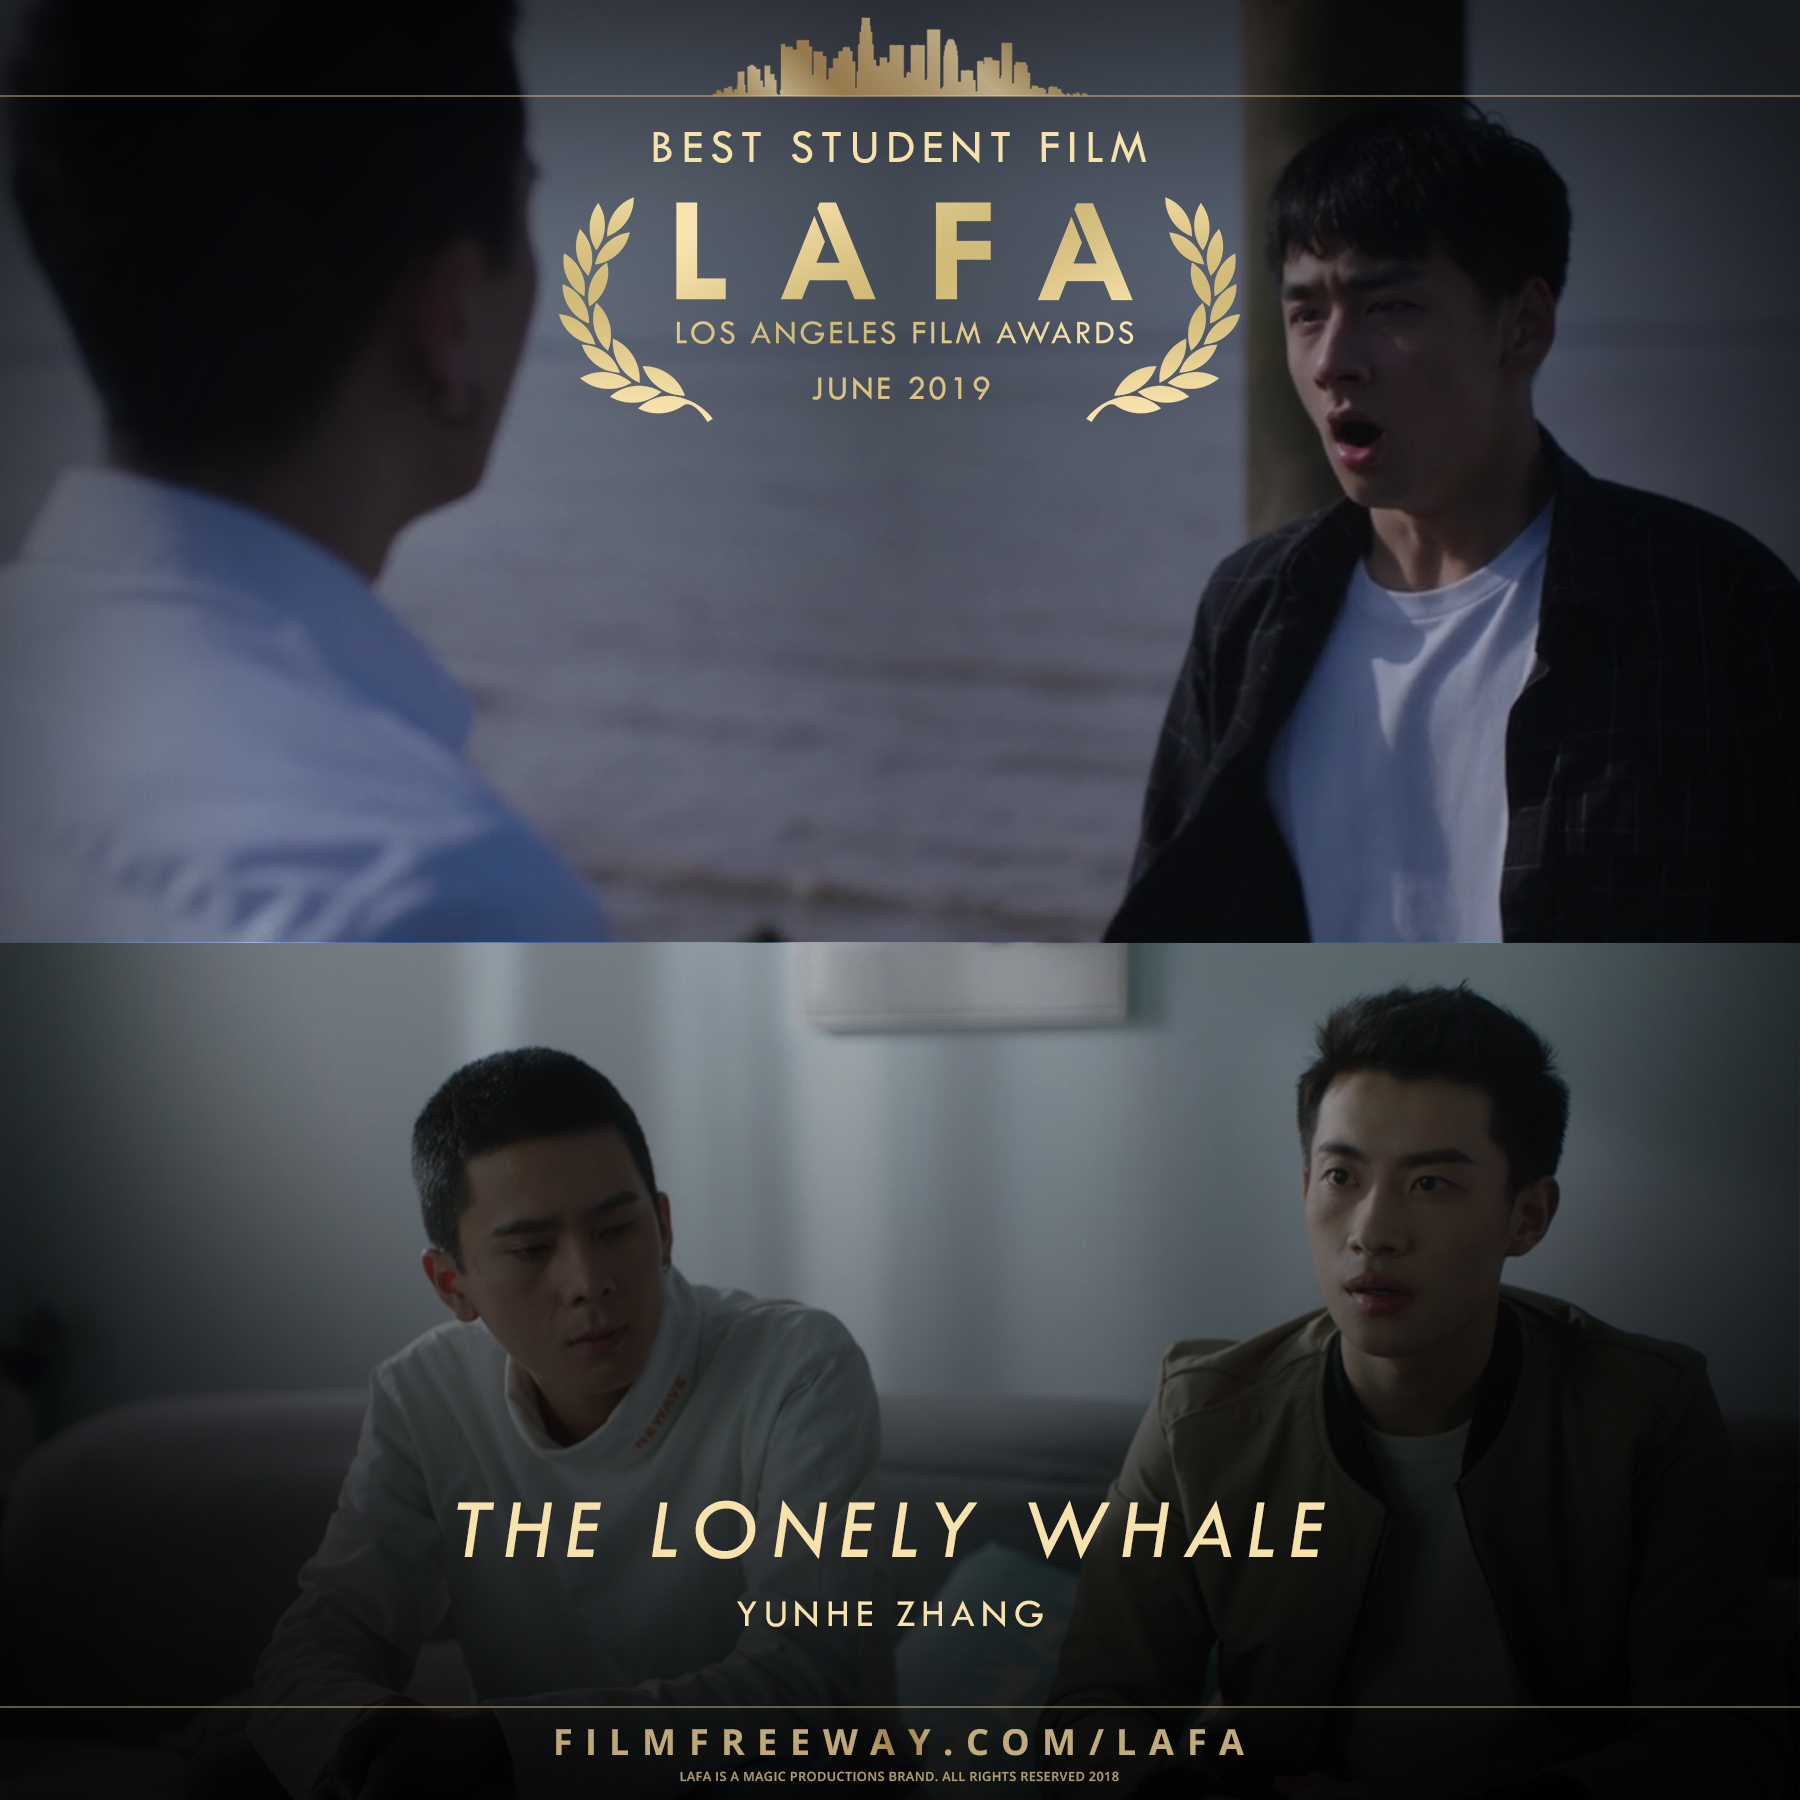 The Lonely Whale design